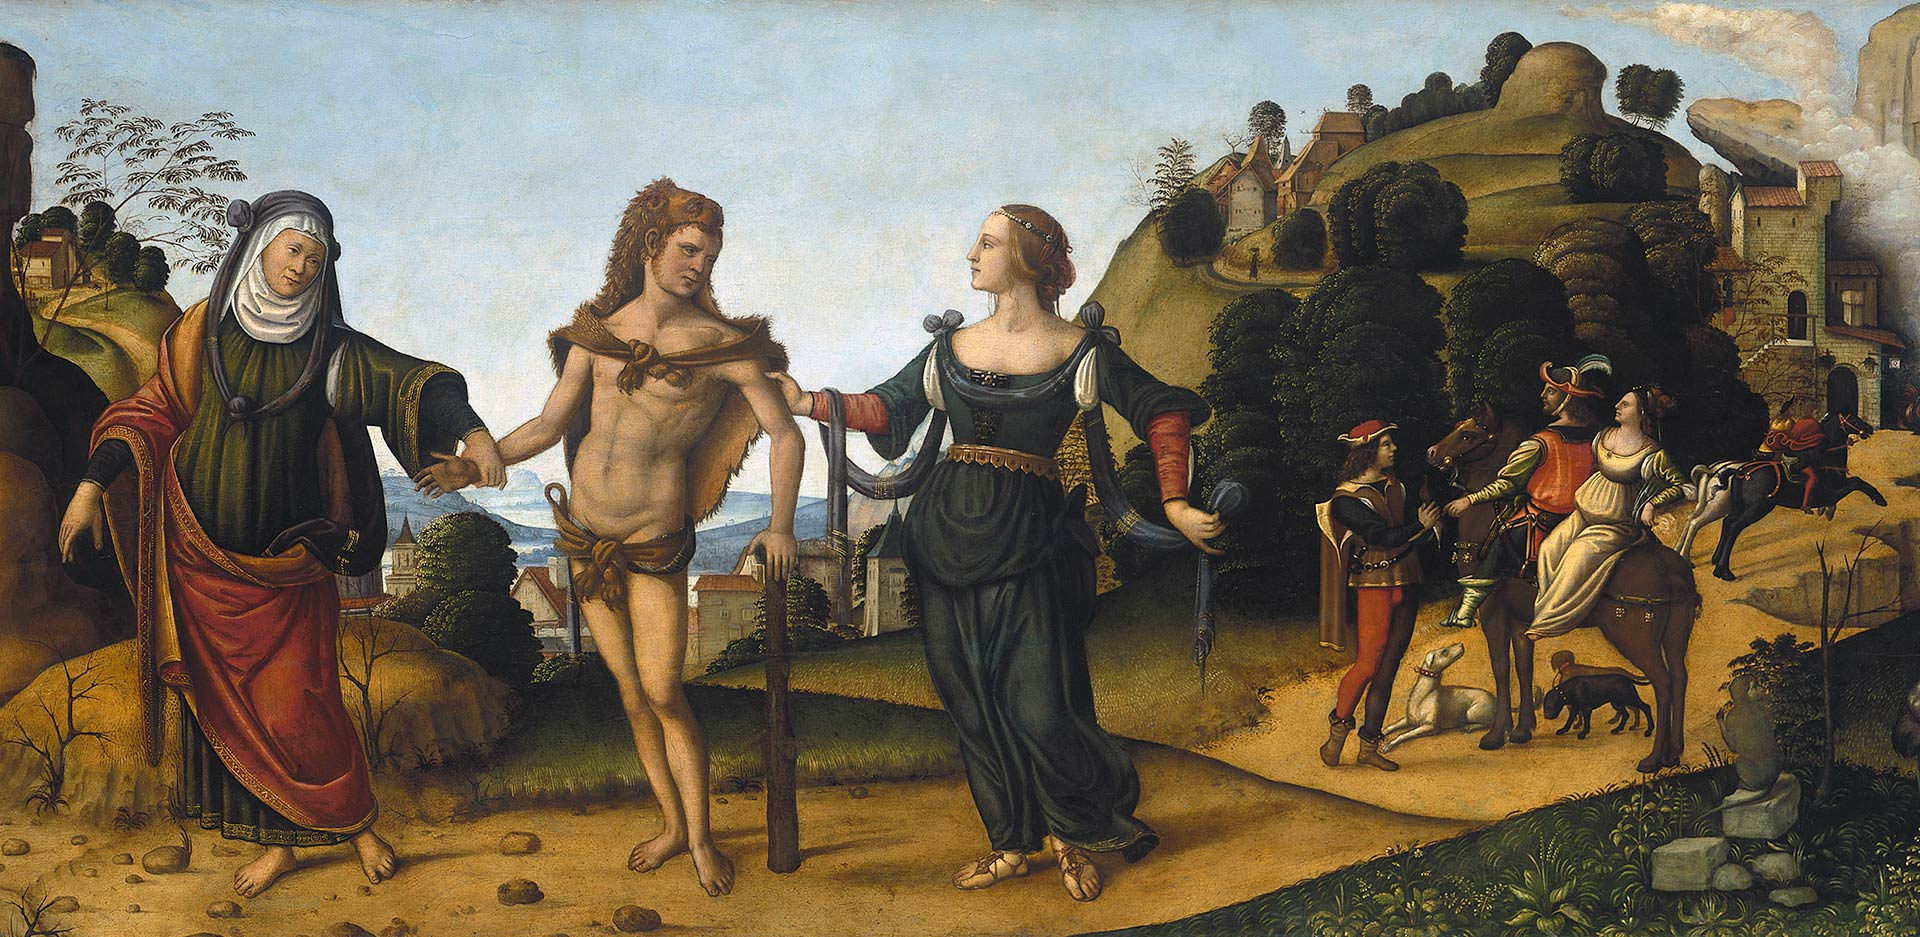 On view is: Niccoló Soggi, Hercules at the Crossroads (detail)